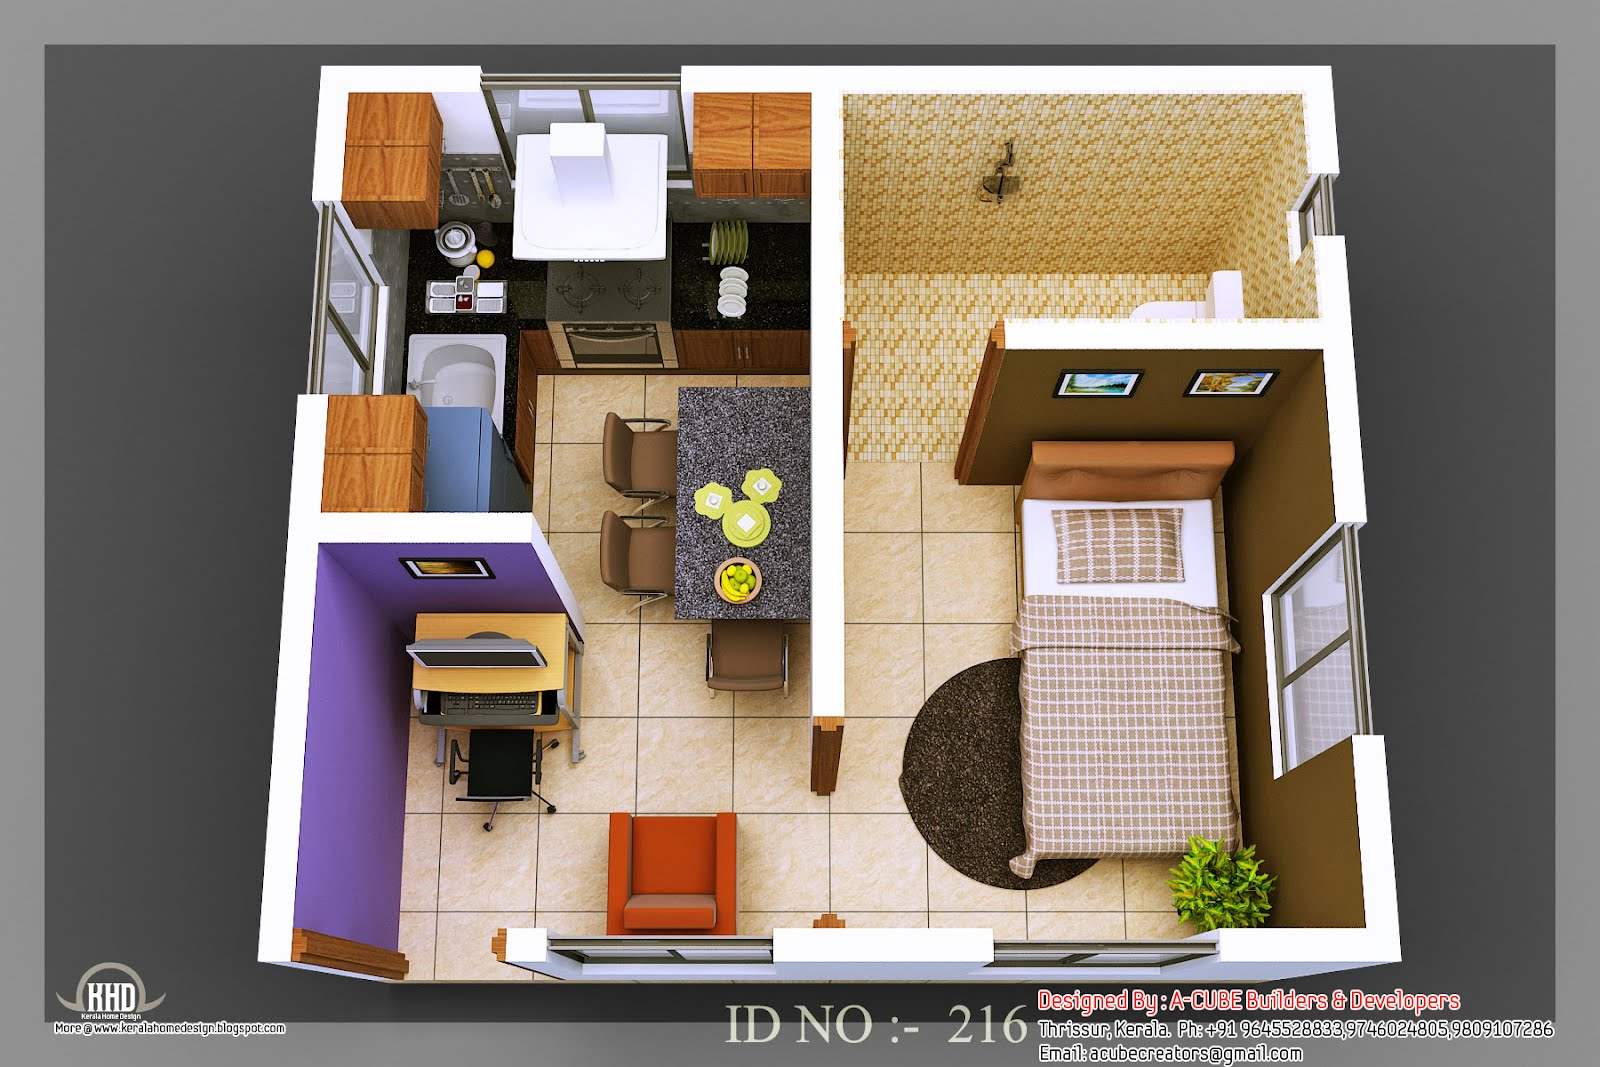 3d isometric views of small house plans a taste in heaven for Idee per case piccole